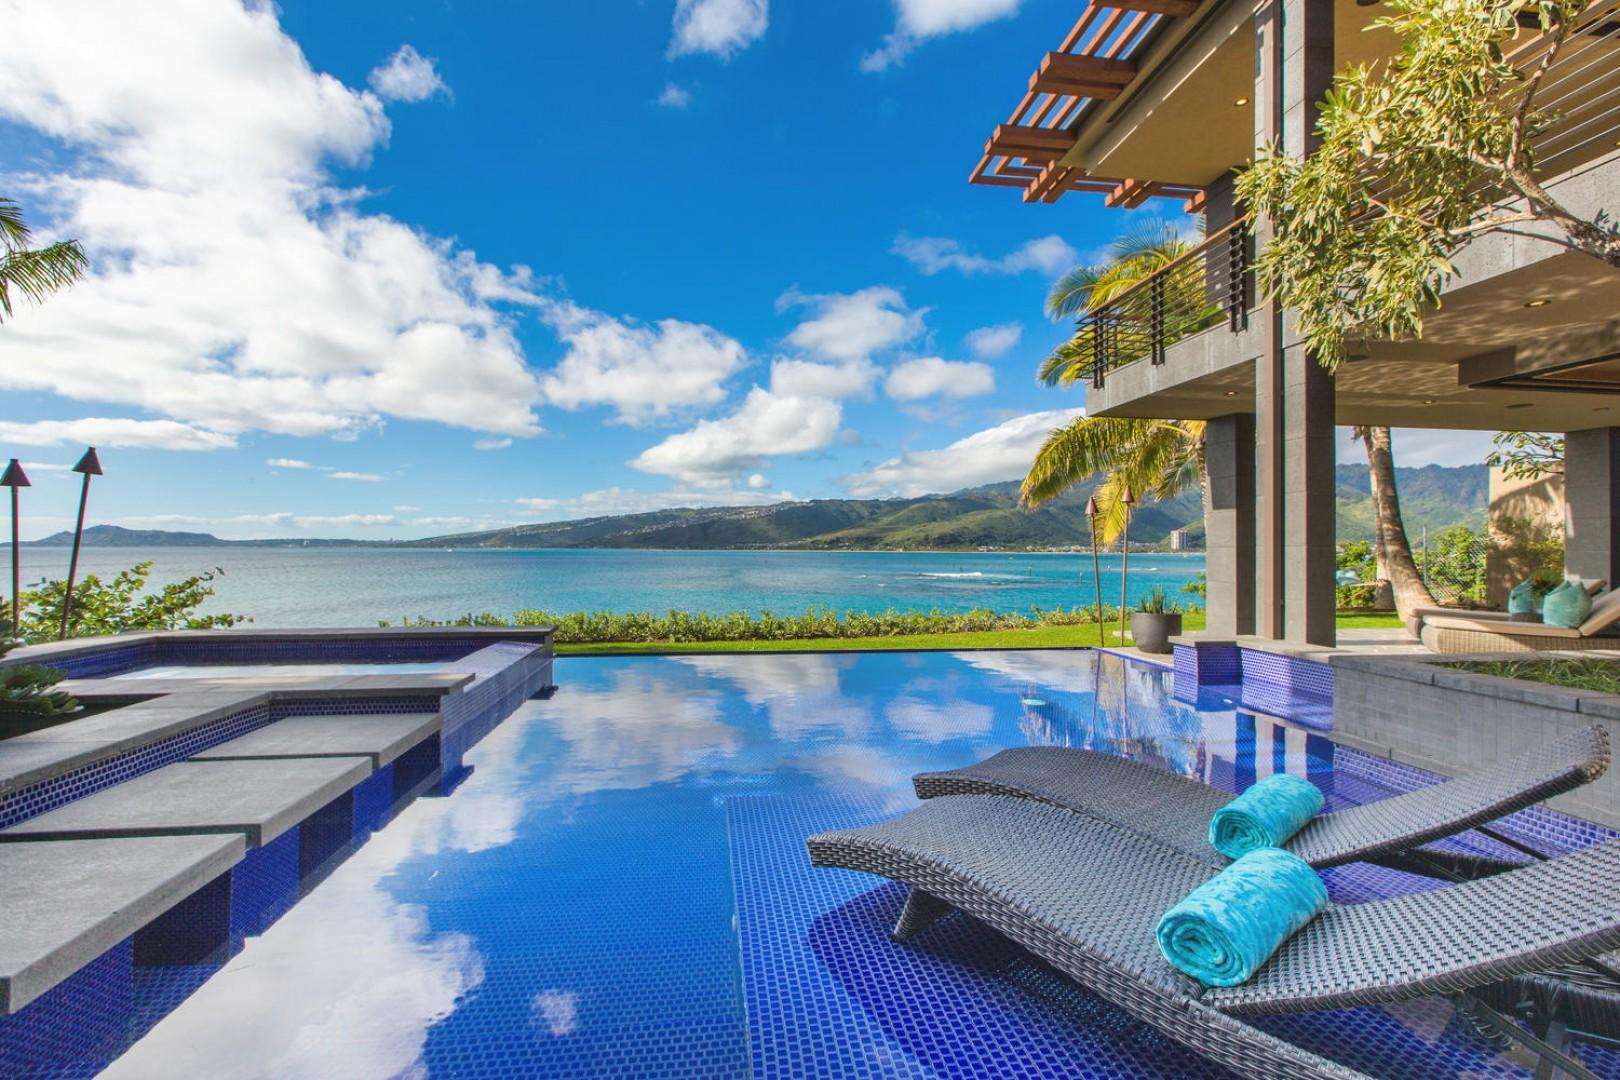 Infinity pool with chaise lounge chairs.